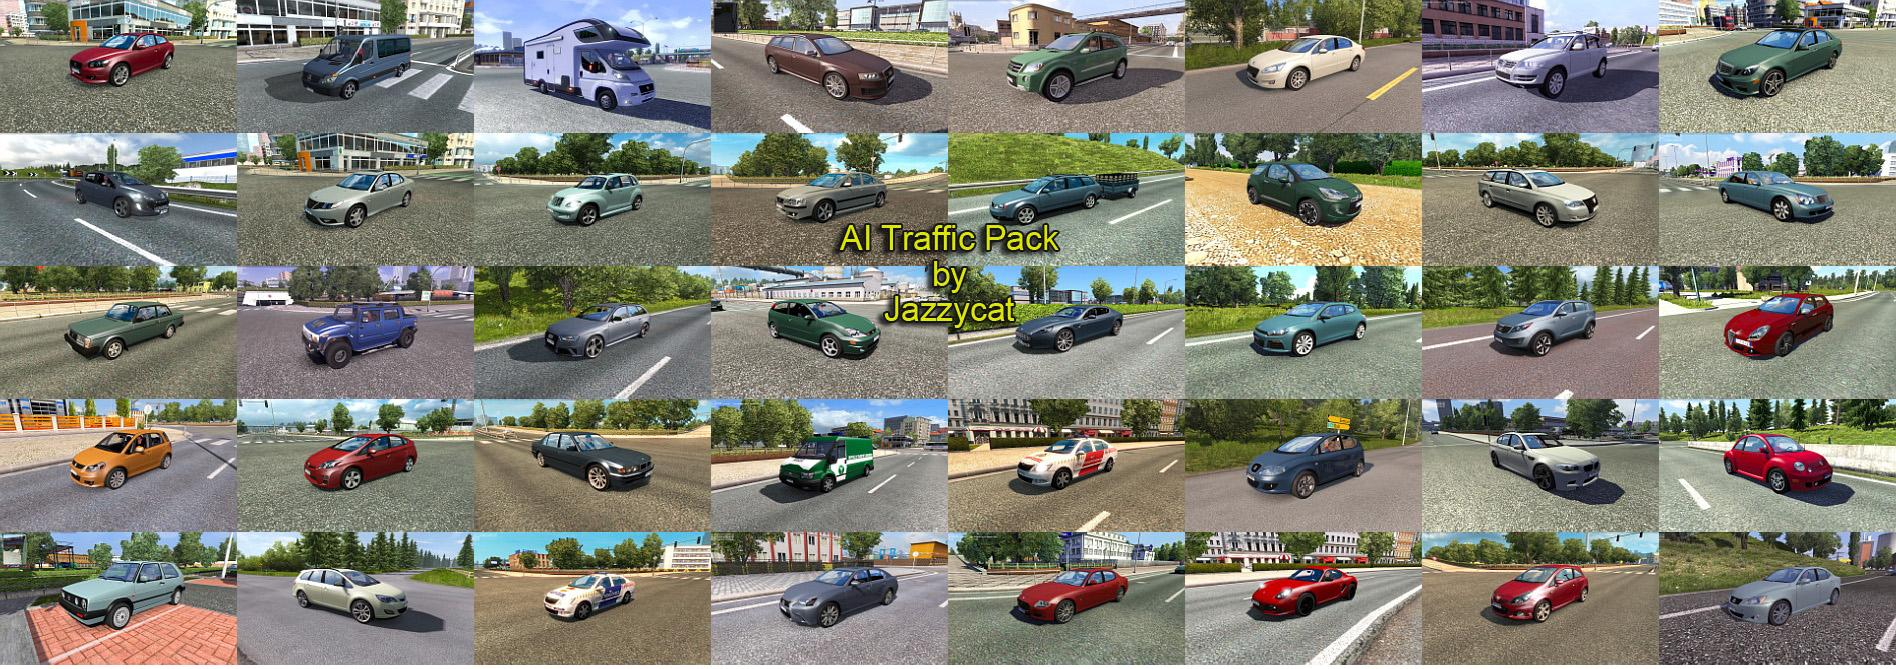 AI TRAFFIC PACK BY JAZZYCAT V3 3 For ETS2 -Euro Truck